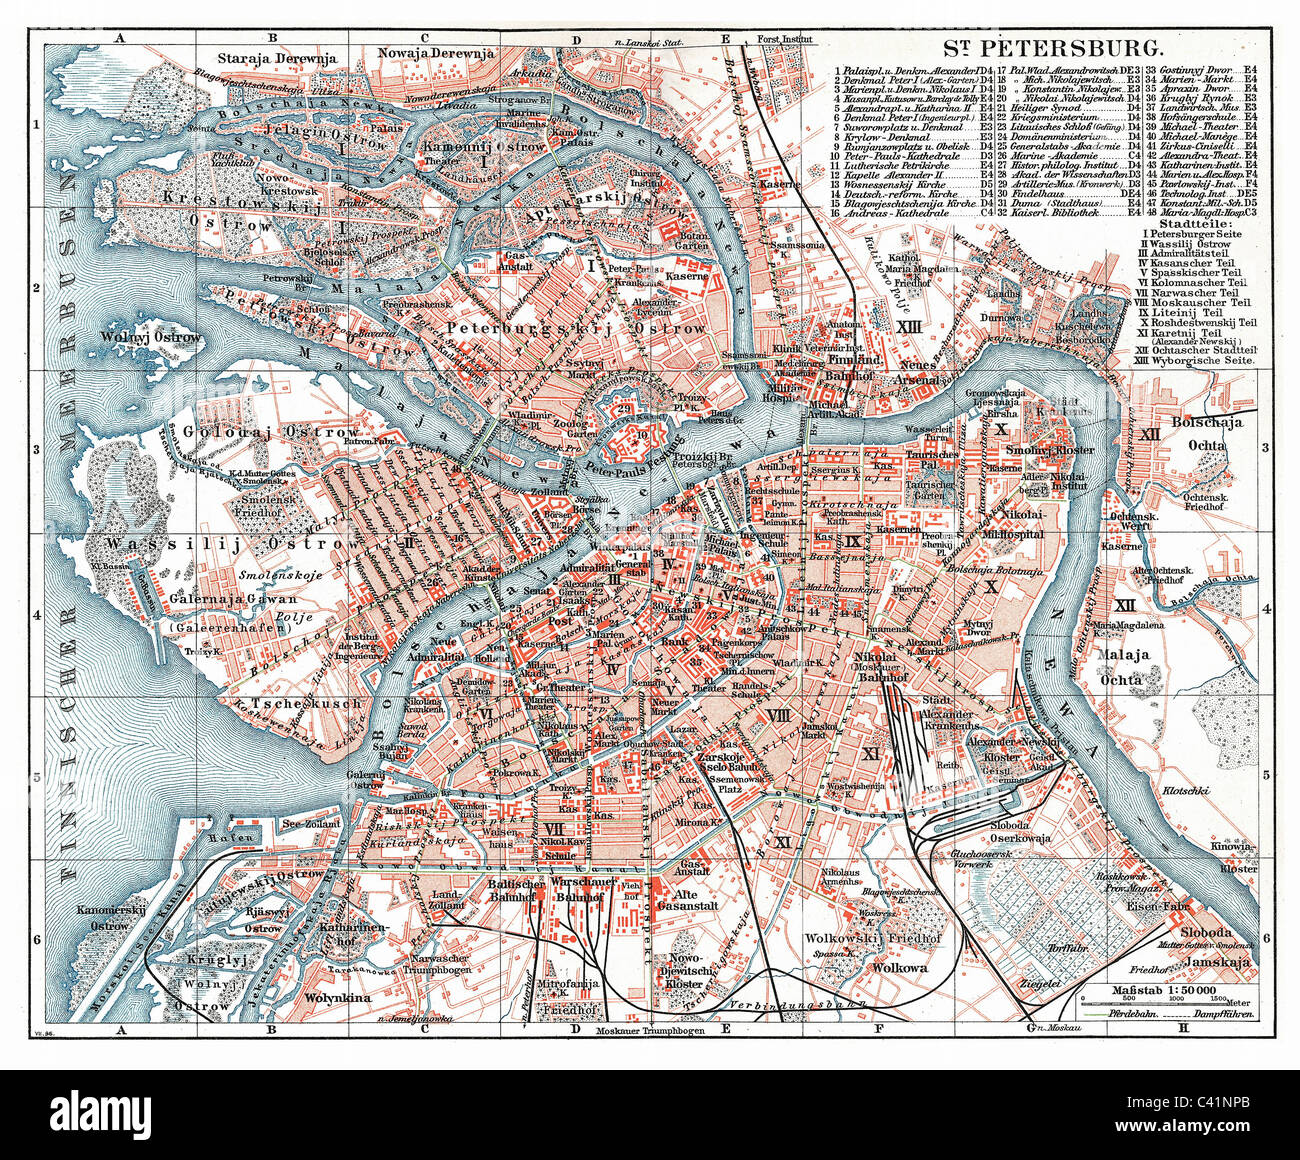 cartography, city map, Russia, Saint Petersburg, Meyers Konversationslexikon (Meyer's Encyclopaedia), 5th edition, - Stock Image